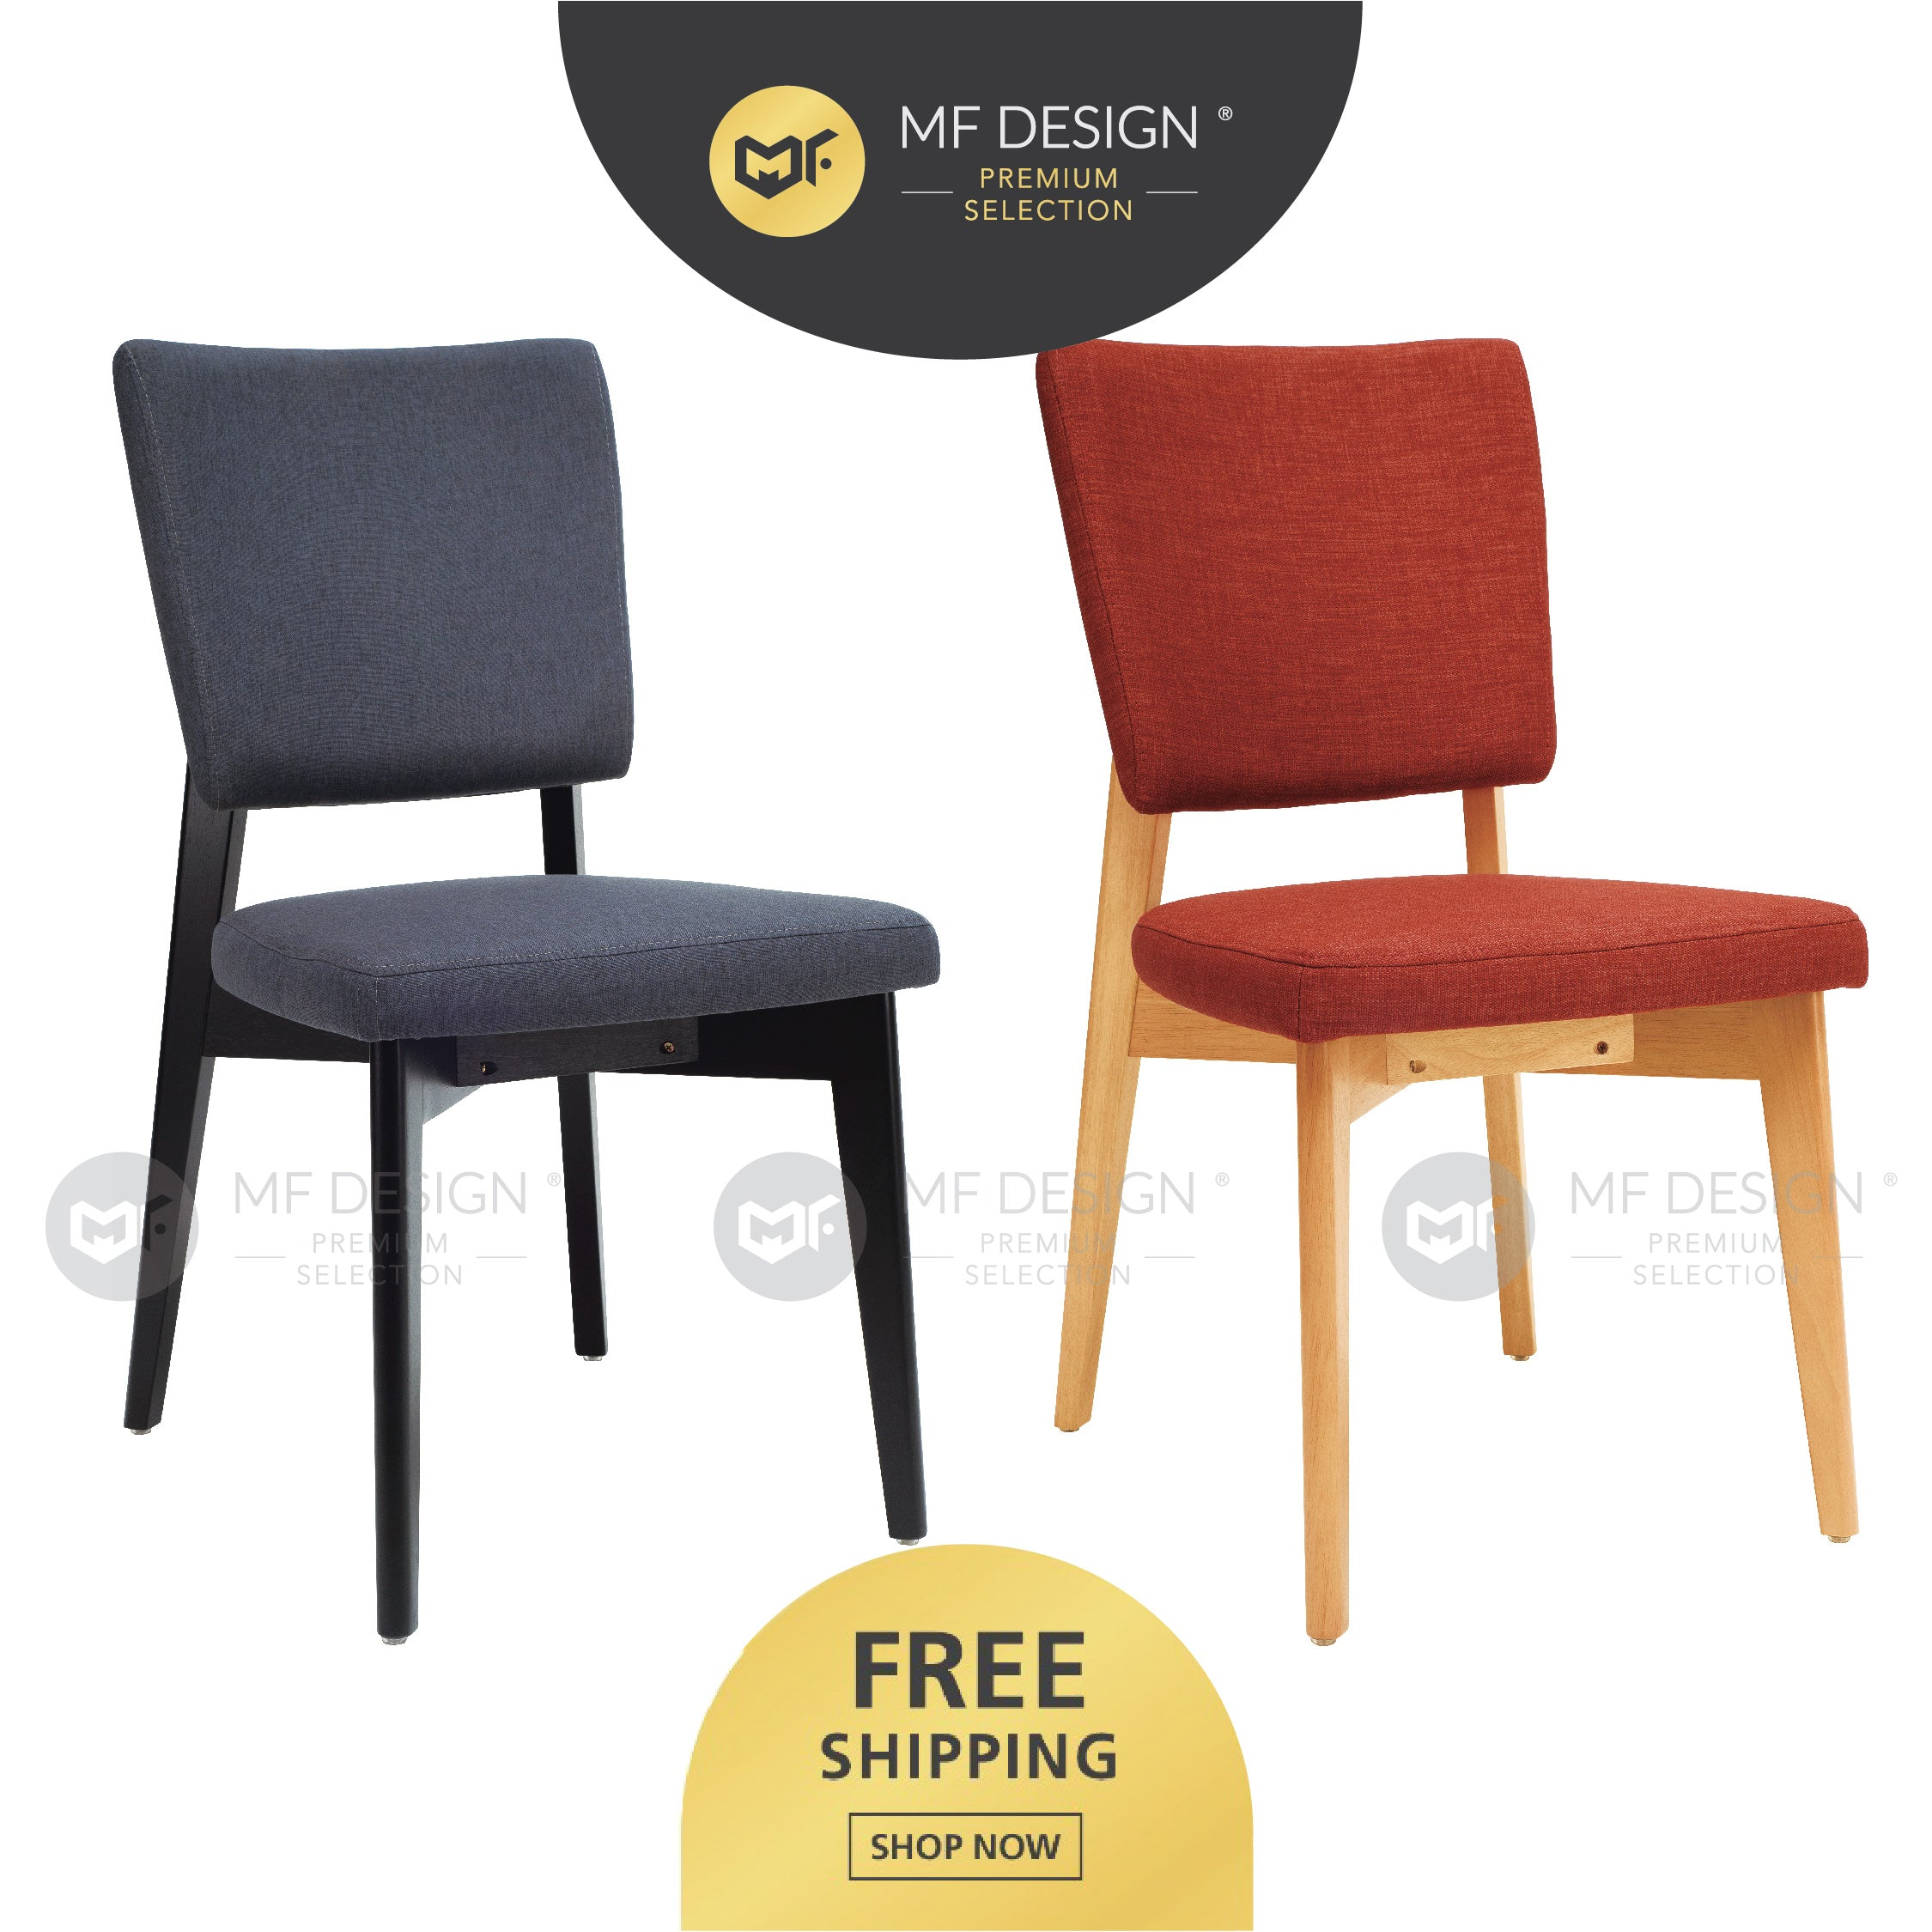 MFD Pemium Gilbert Dining Chair / kerusi / chair